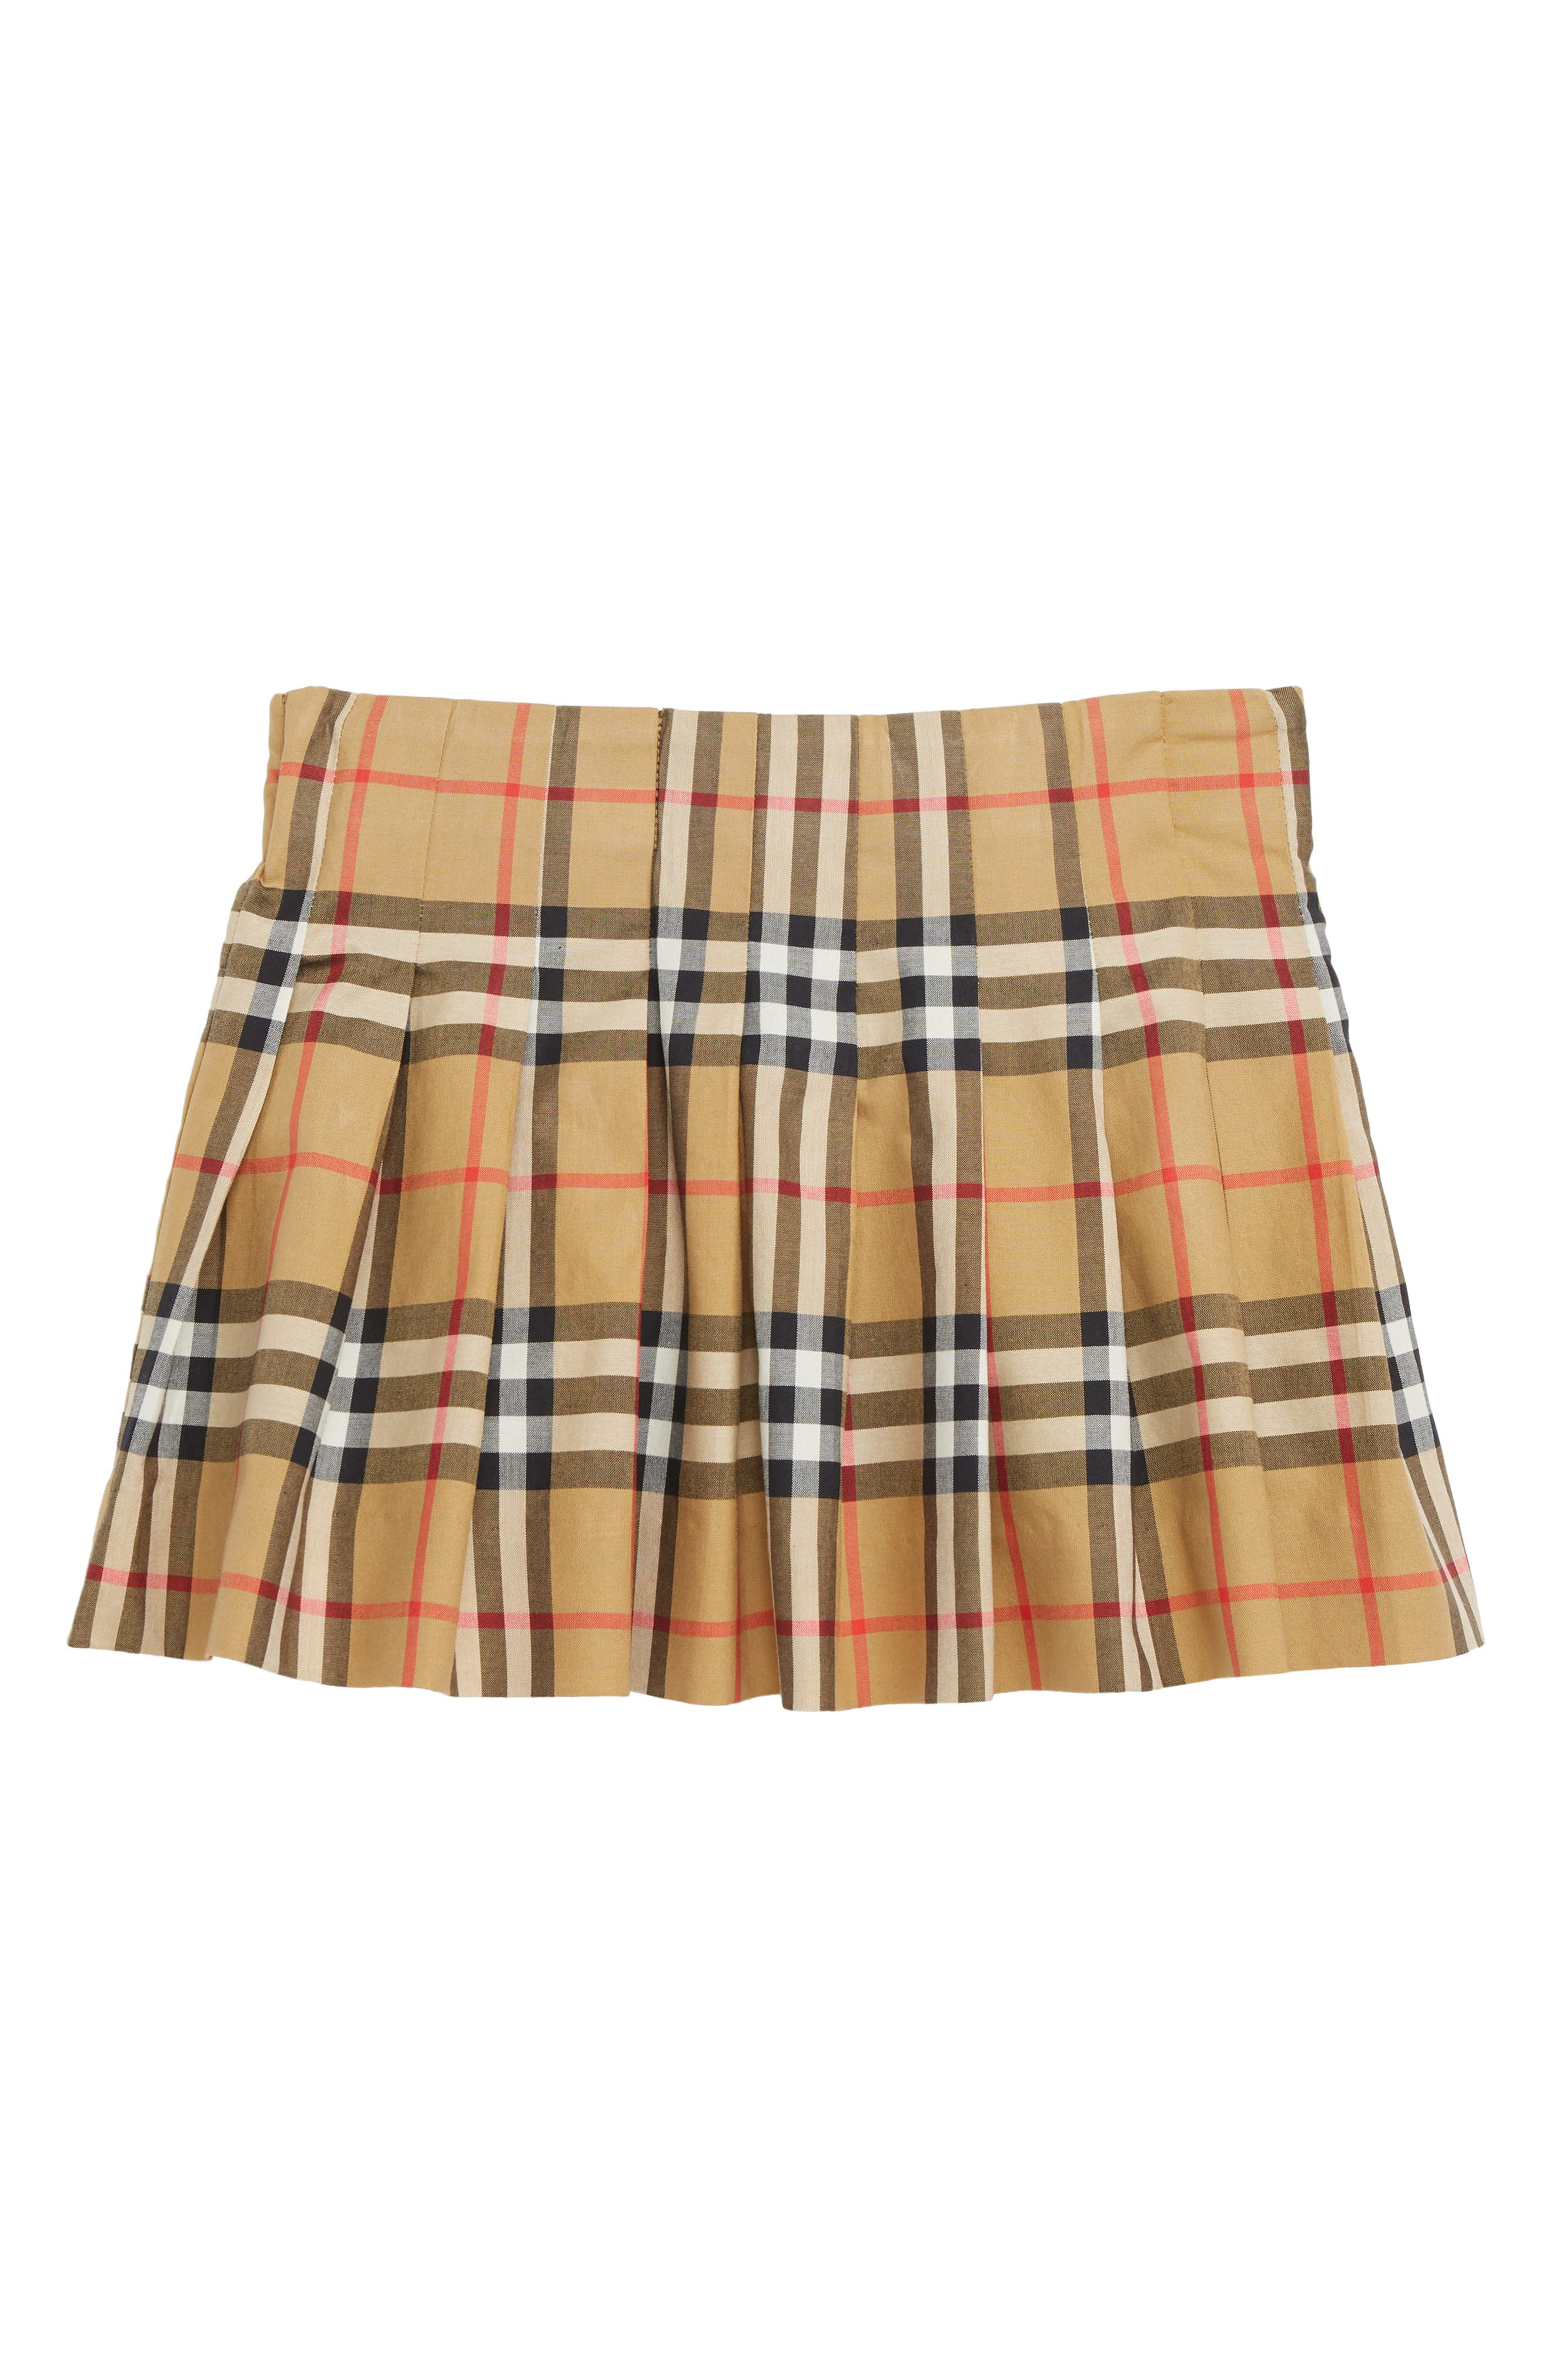 BURBERRY, Pearl Pleated Vintage Check Skirt, Main thumbnail 1, color, ANTIQUE YELLOW